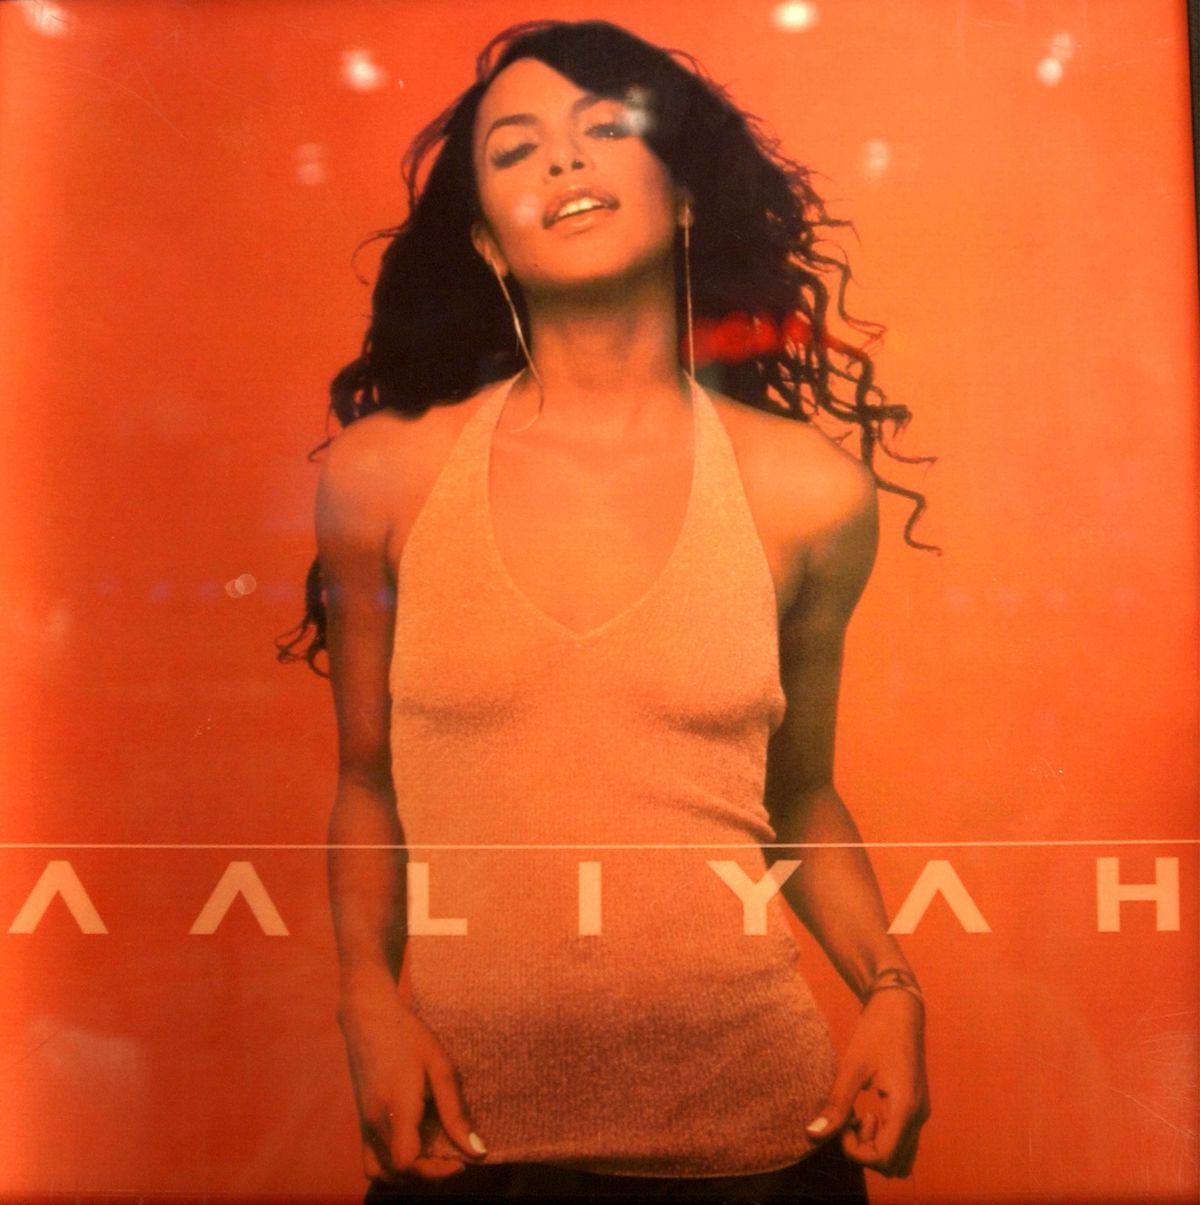 The cover of Aaliyah's self-titled final album.